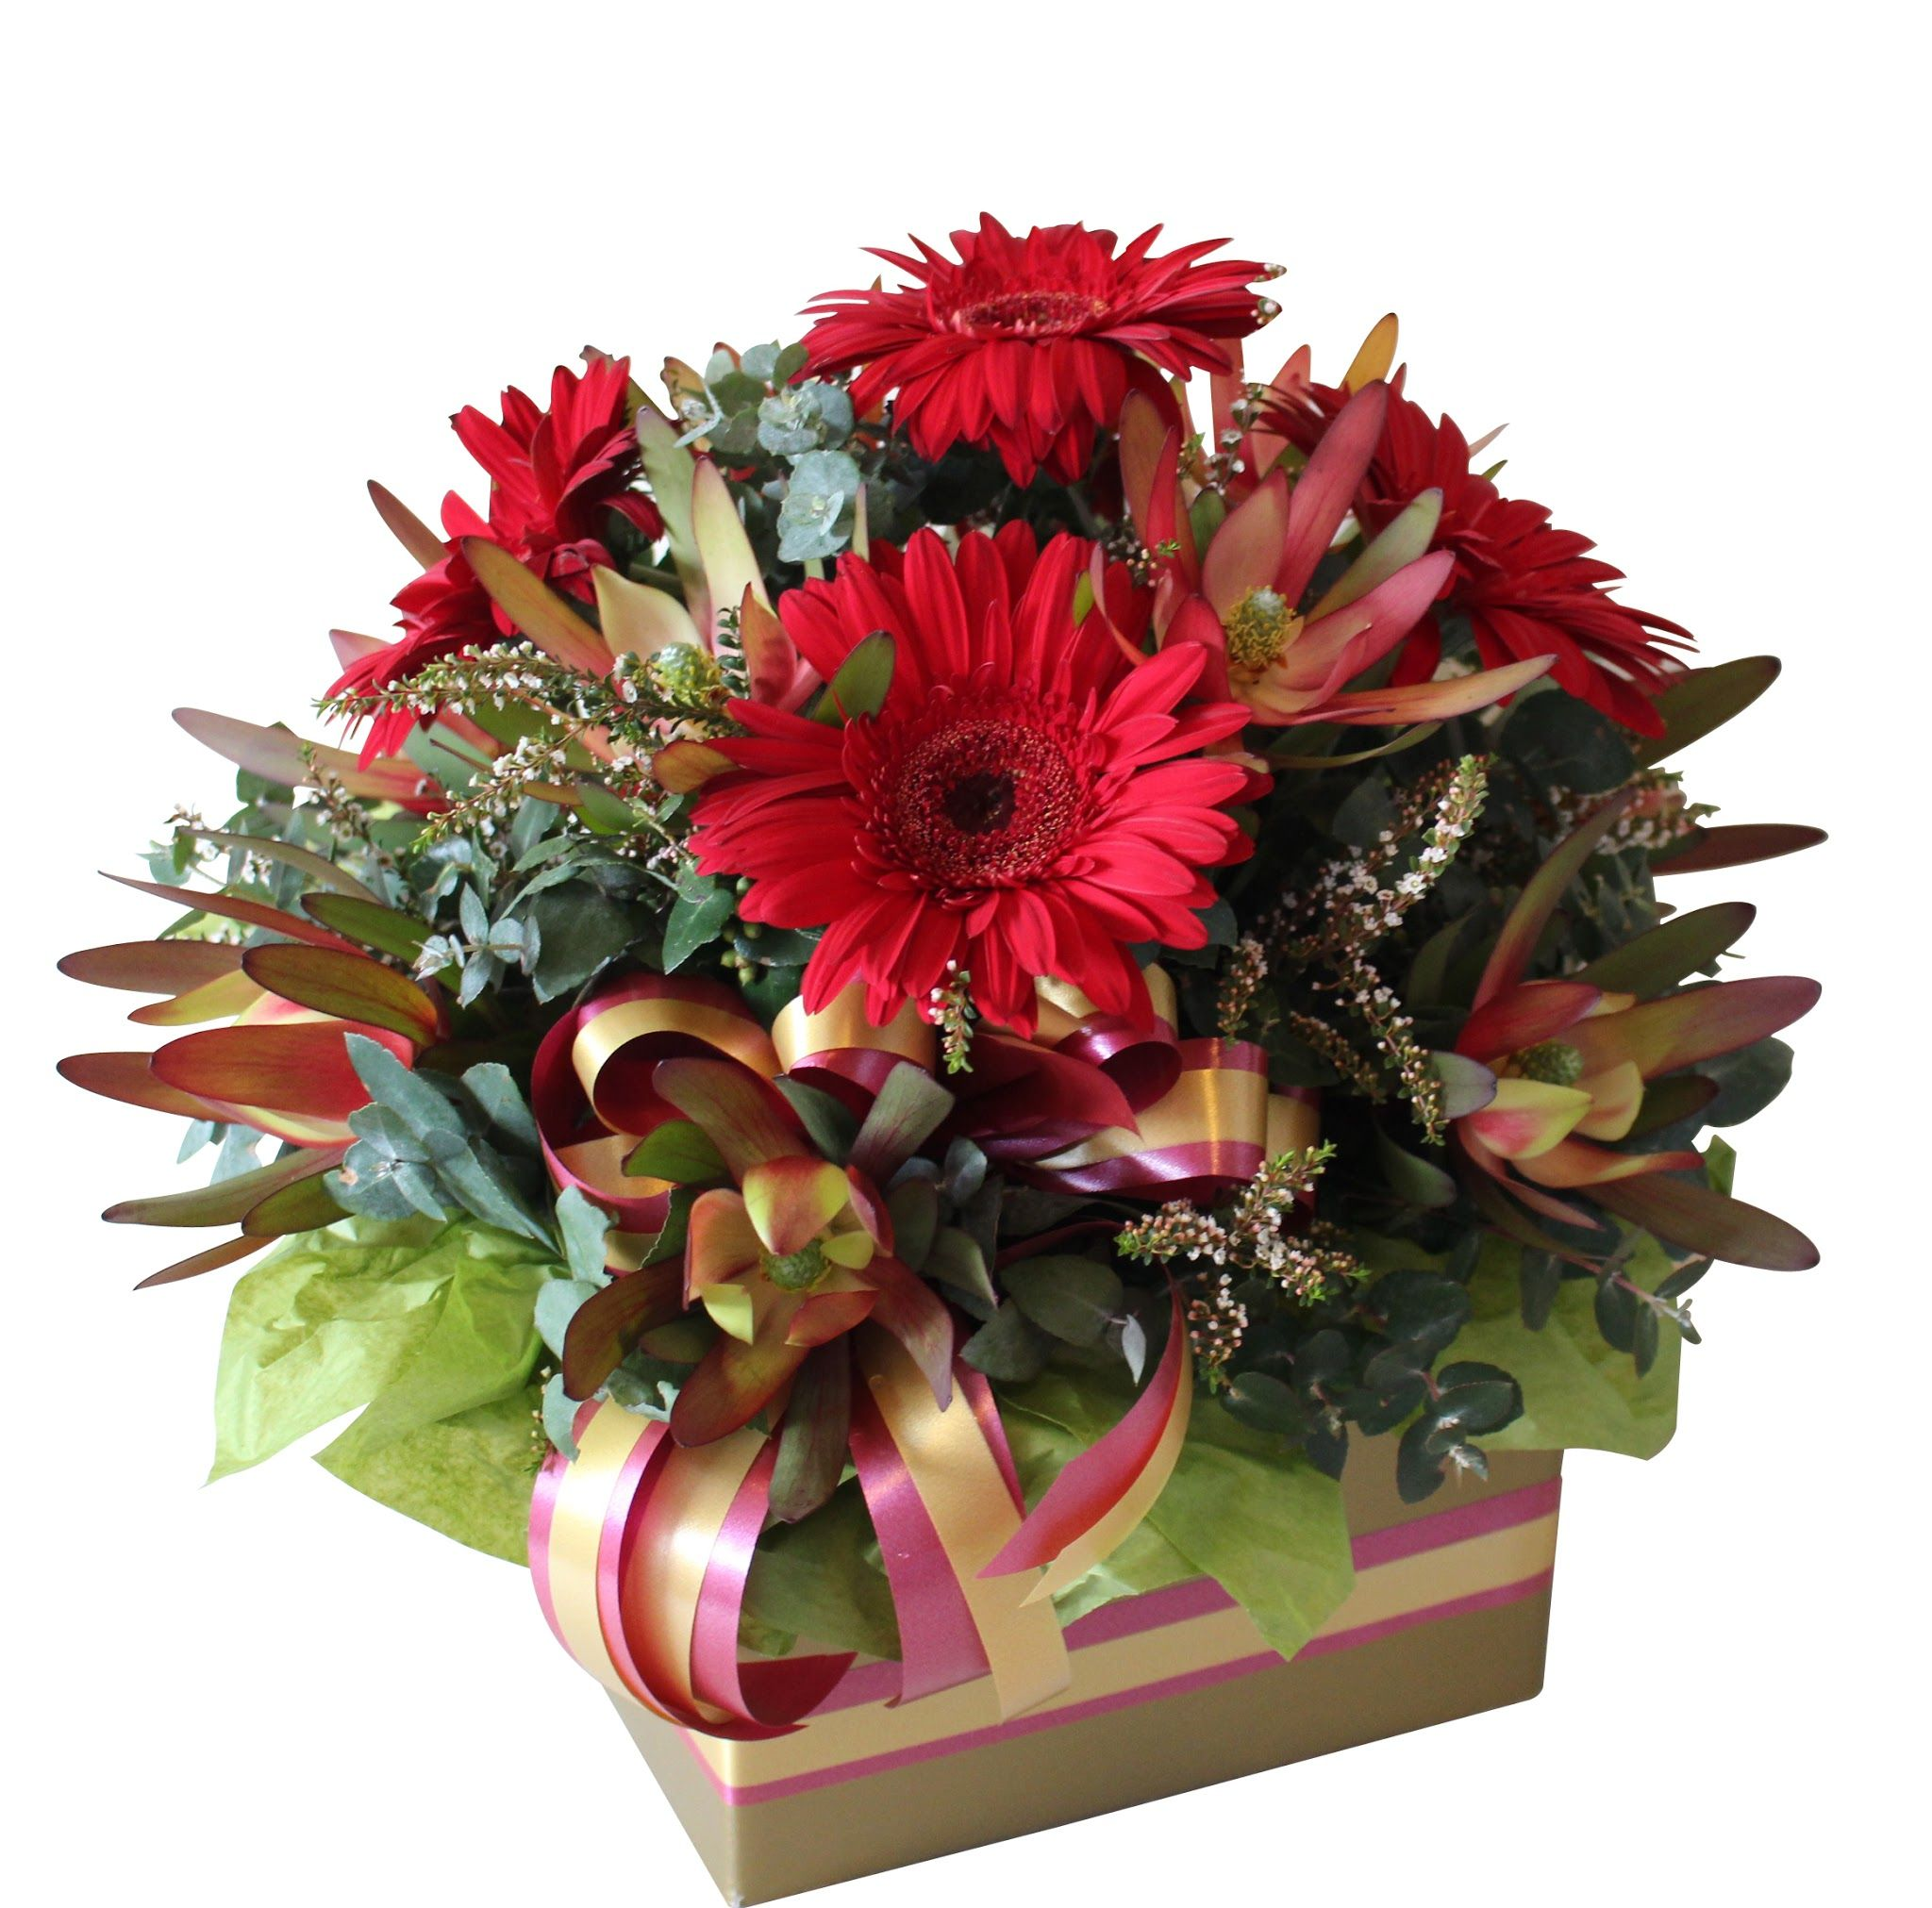 Getting online flowers in Melbourne can save your time